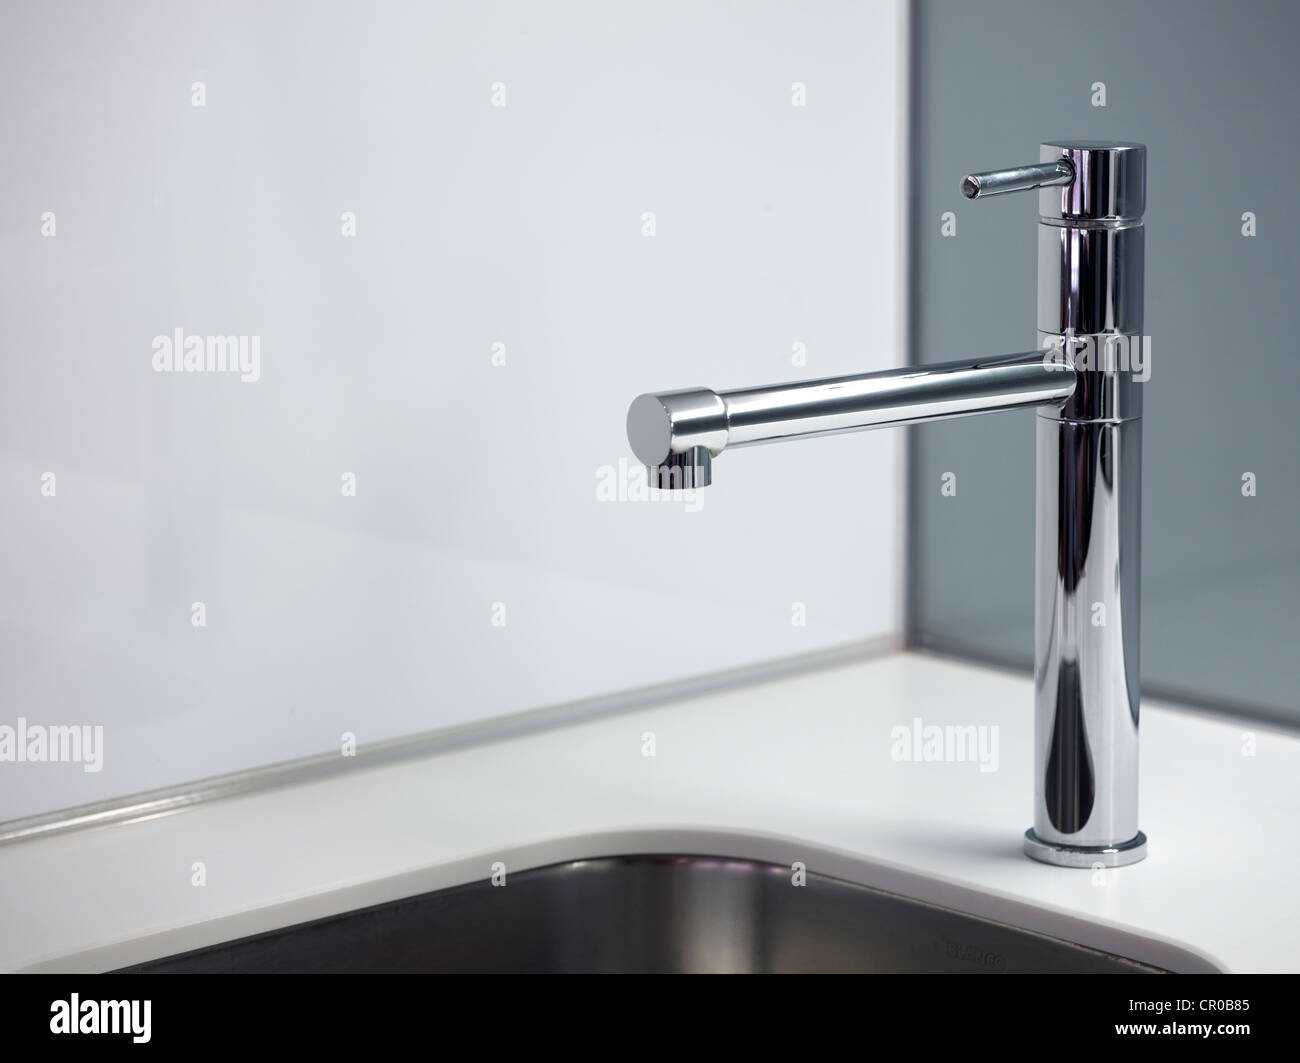 corner of minimalist modern designer kitchen with tap and sink in white and silver - Stock Image